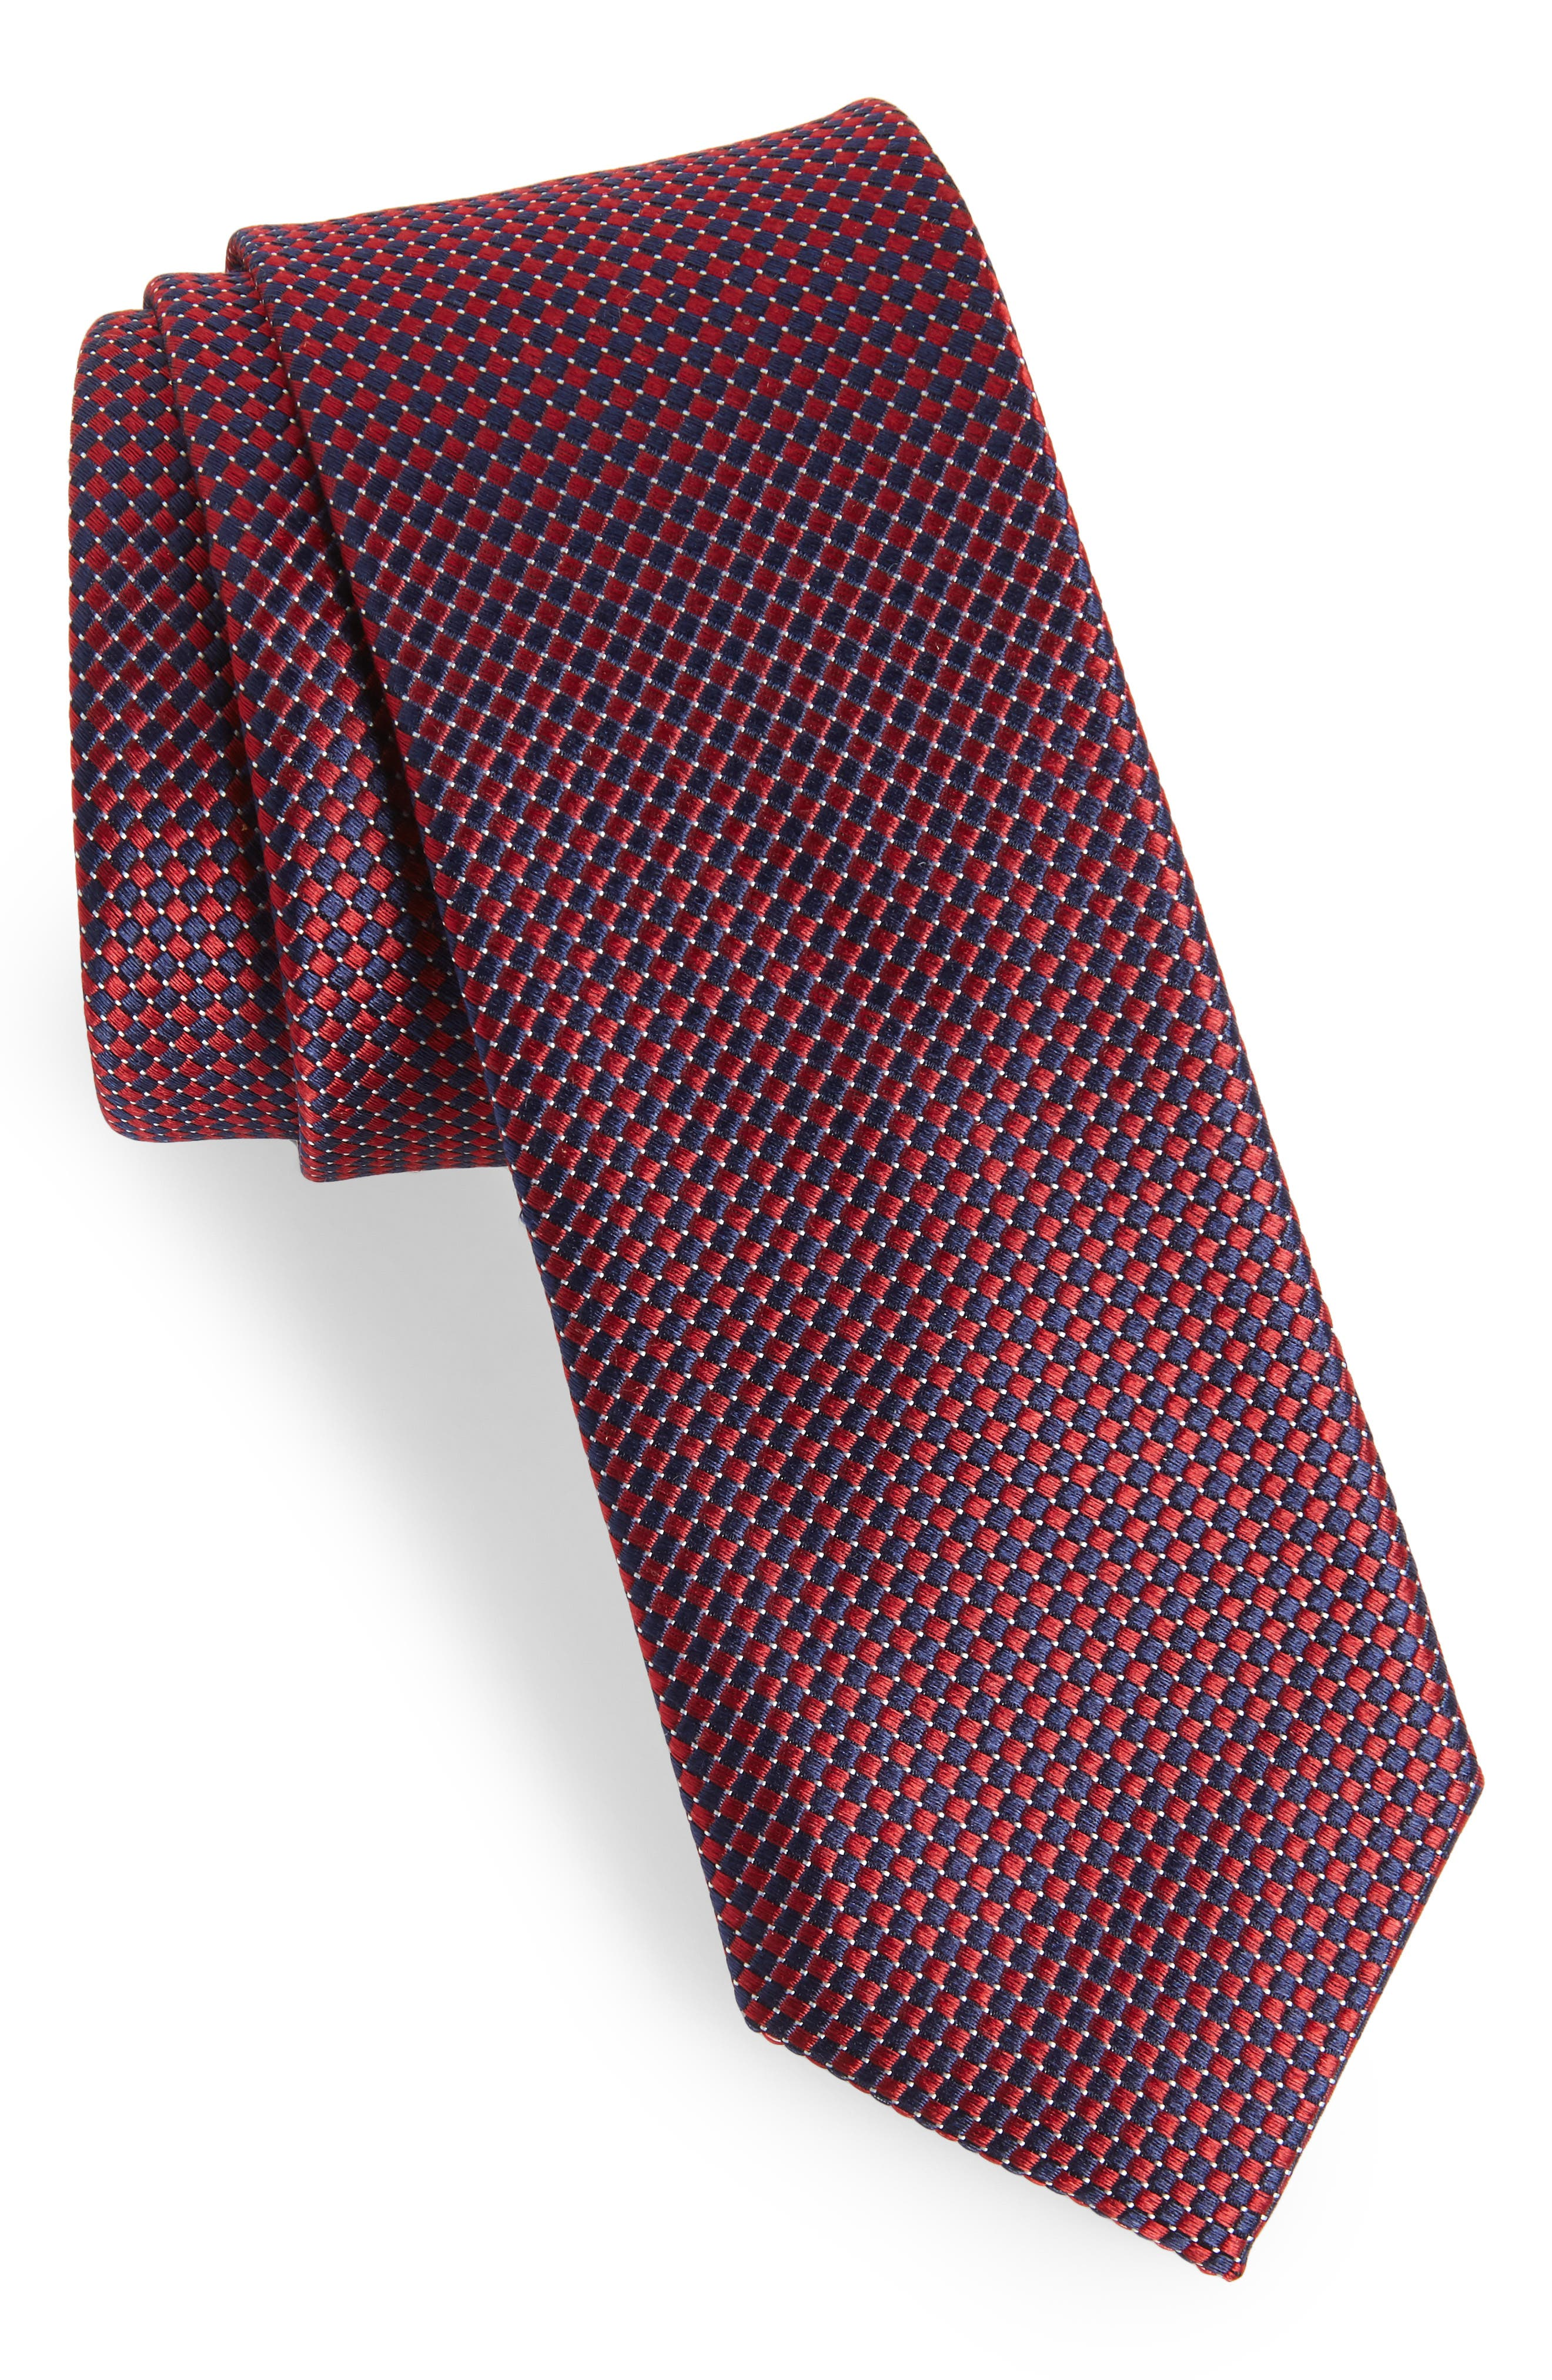 Colombo Silk Tie,                         Main,                         color, Red